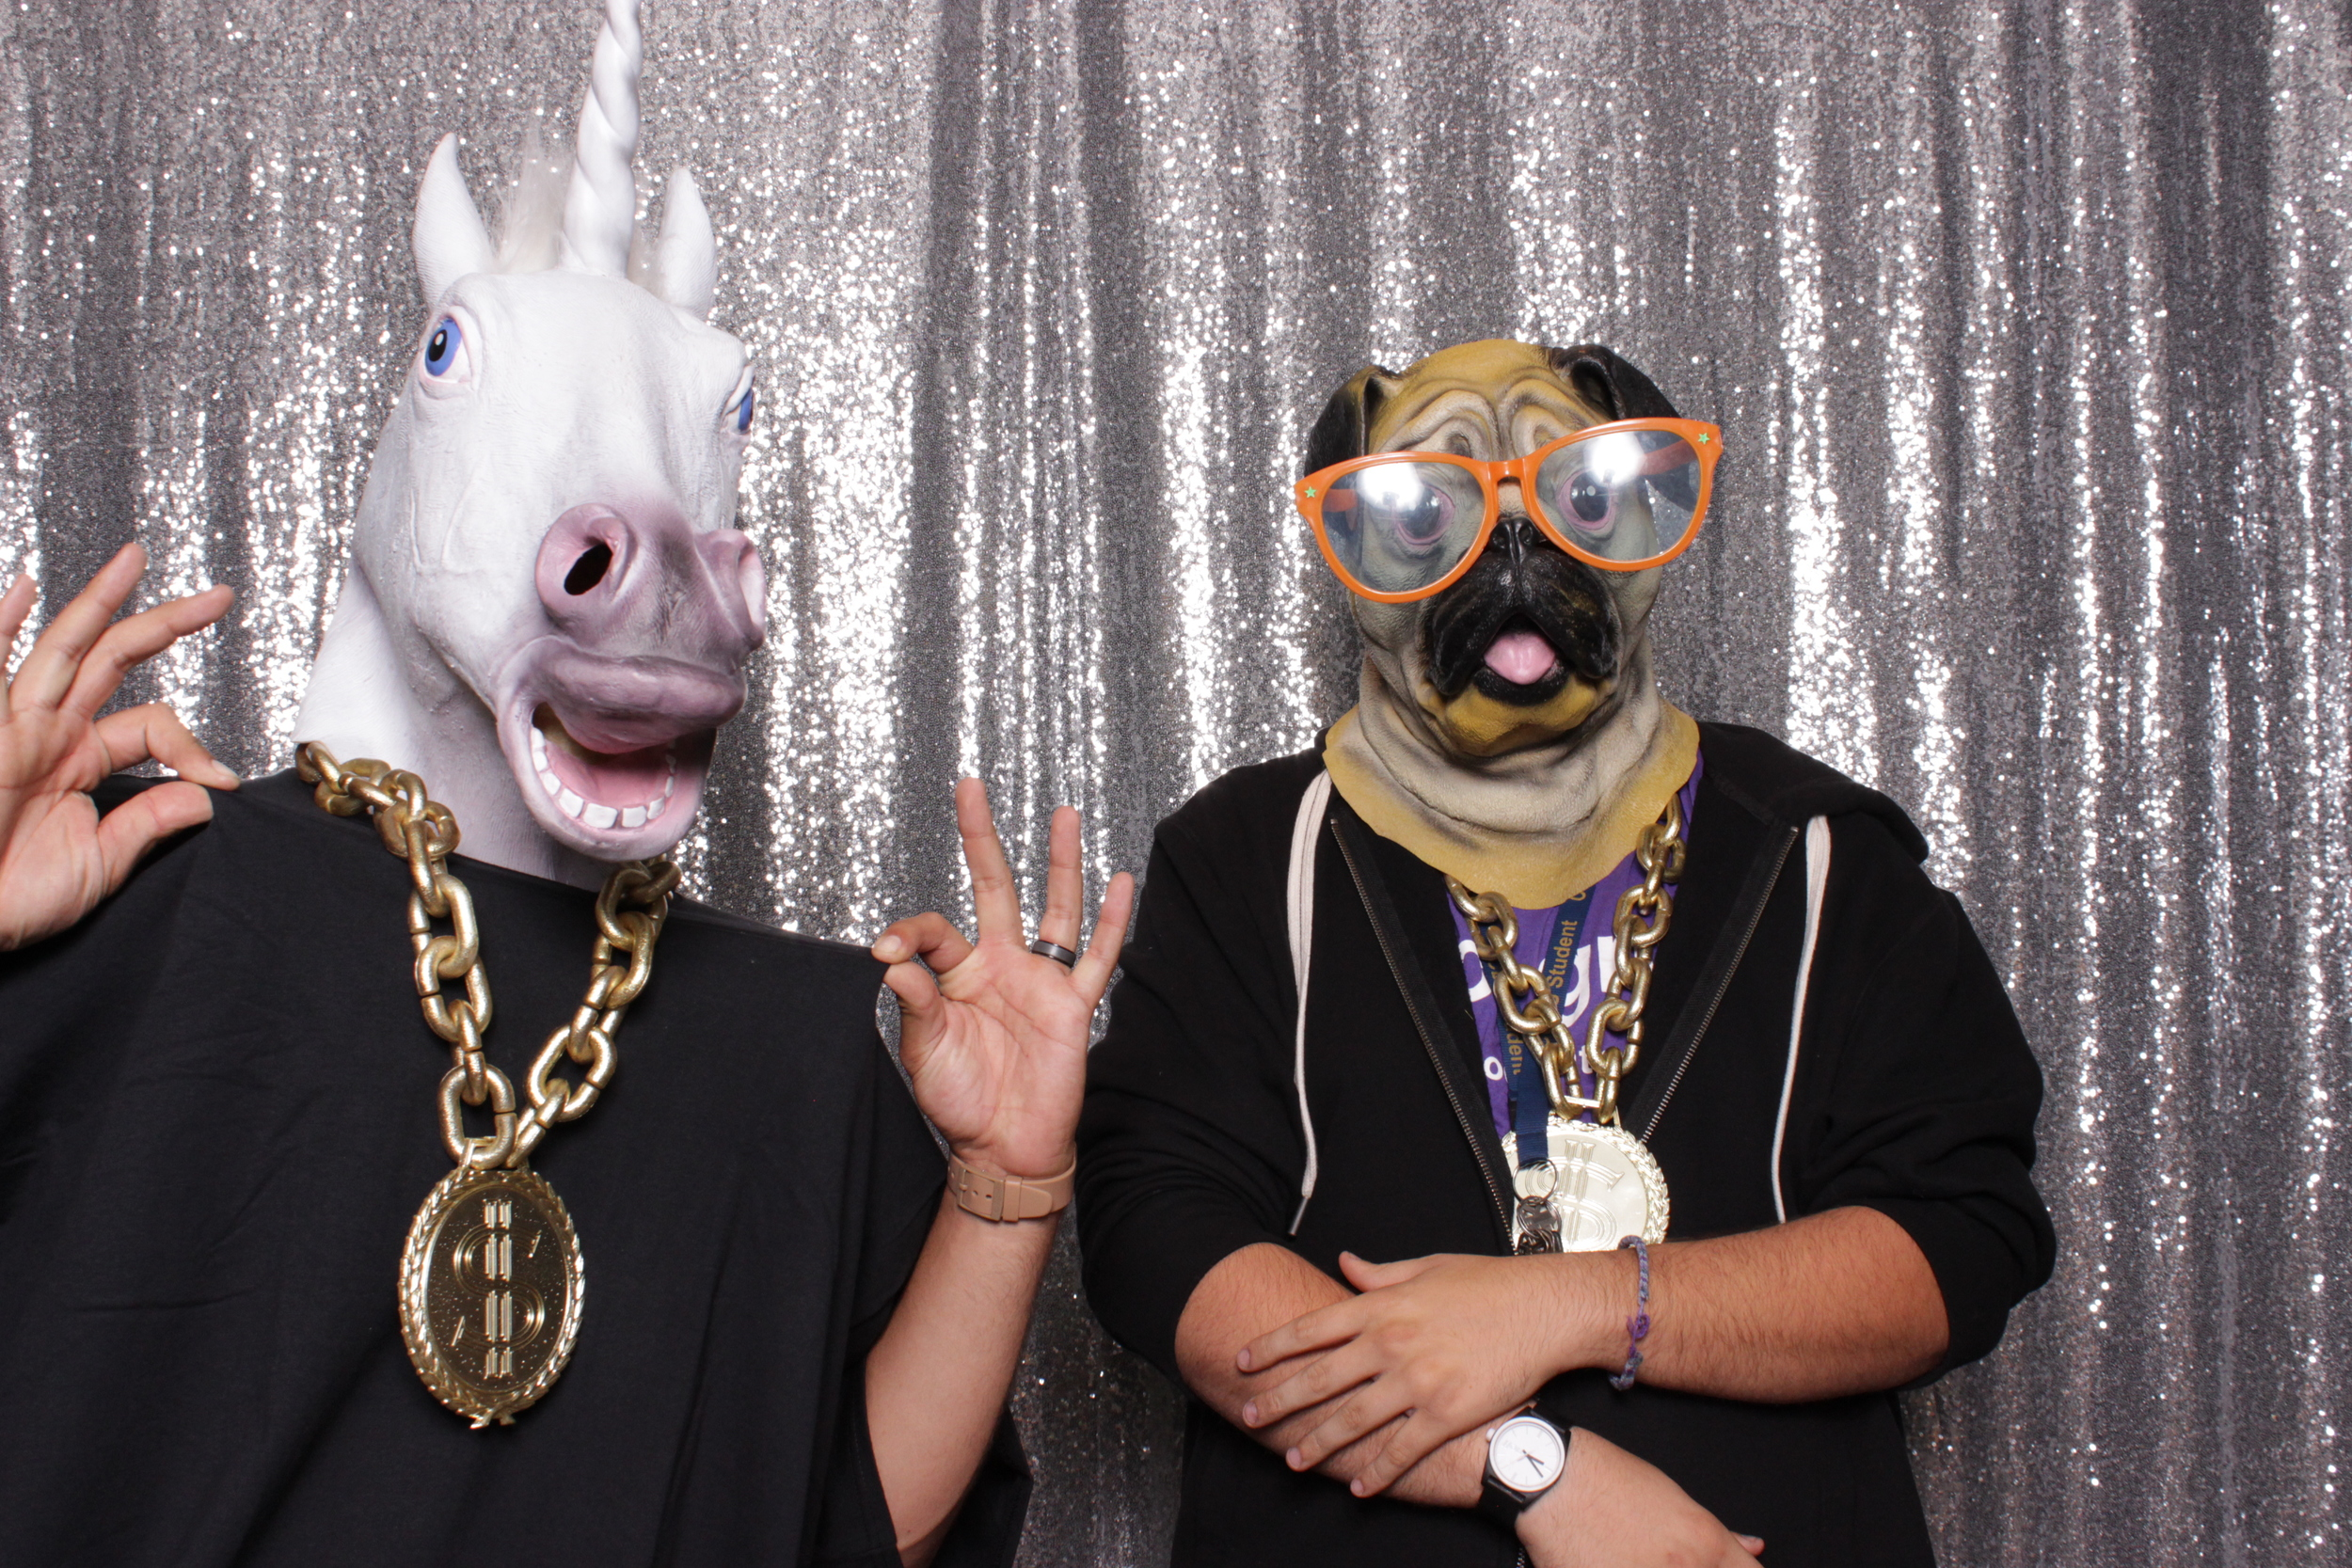 A thug pug and ganstacorn! The silver sequins backdrop really adds to the bling bling of this shot.